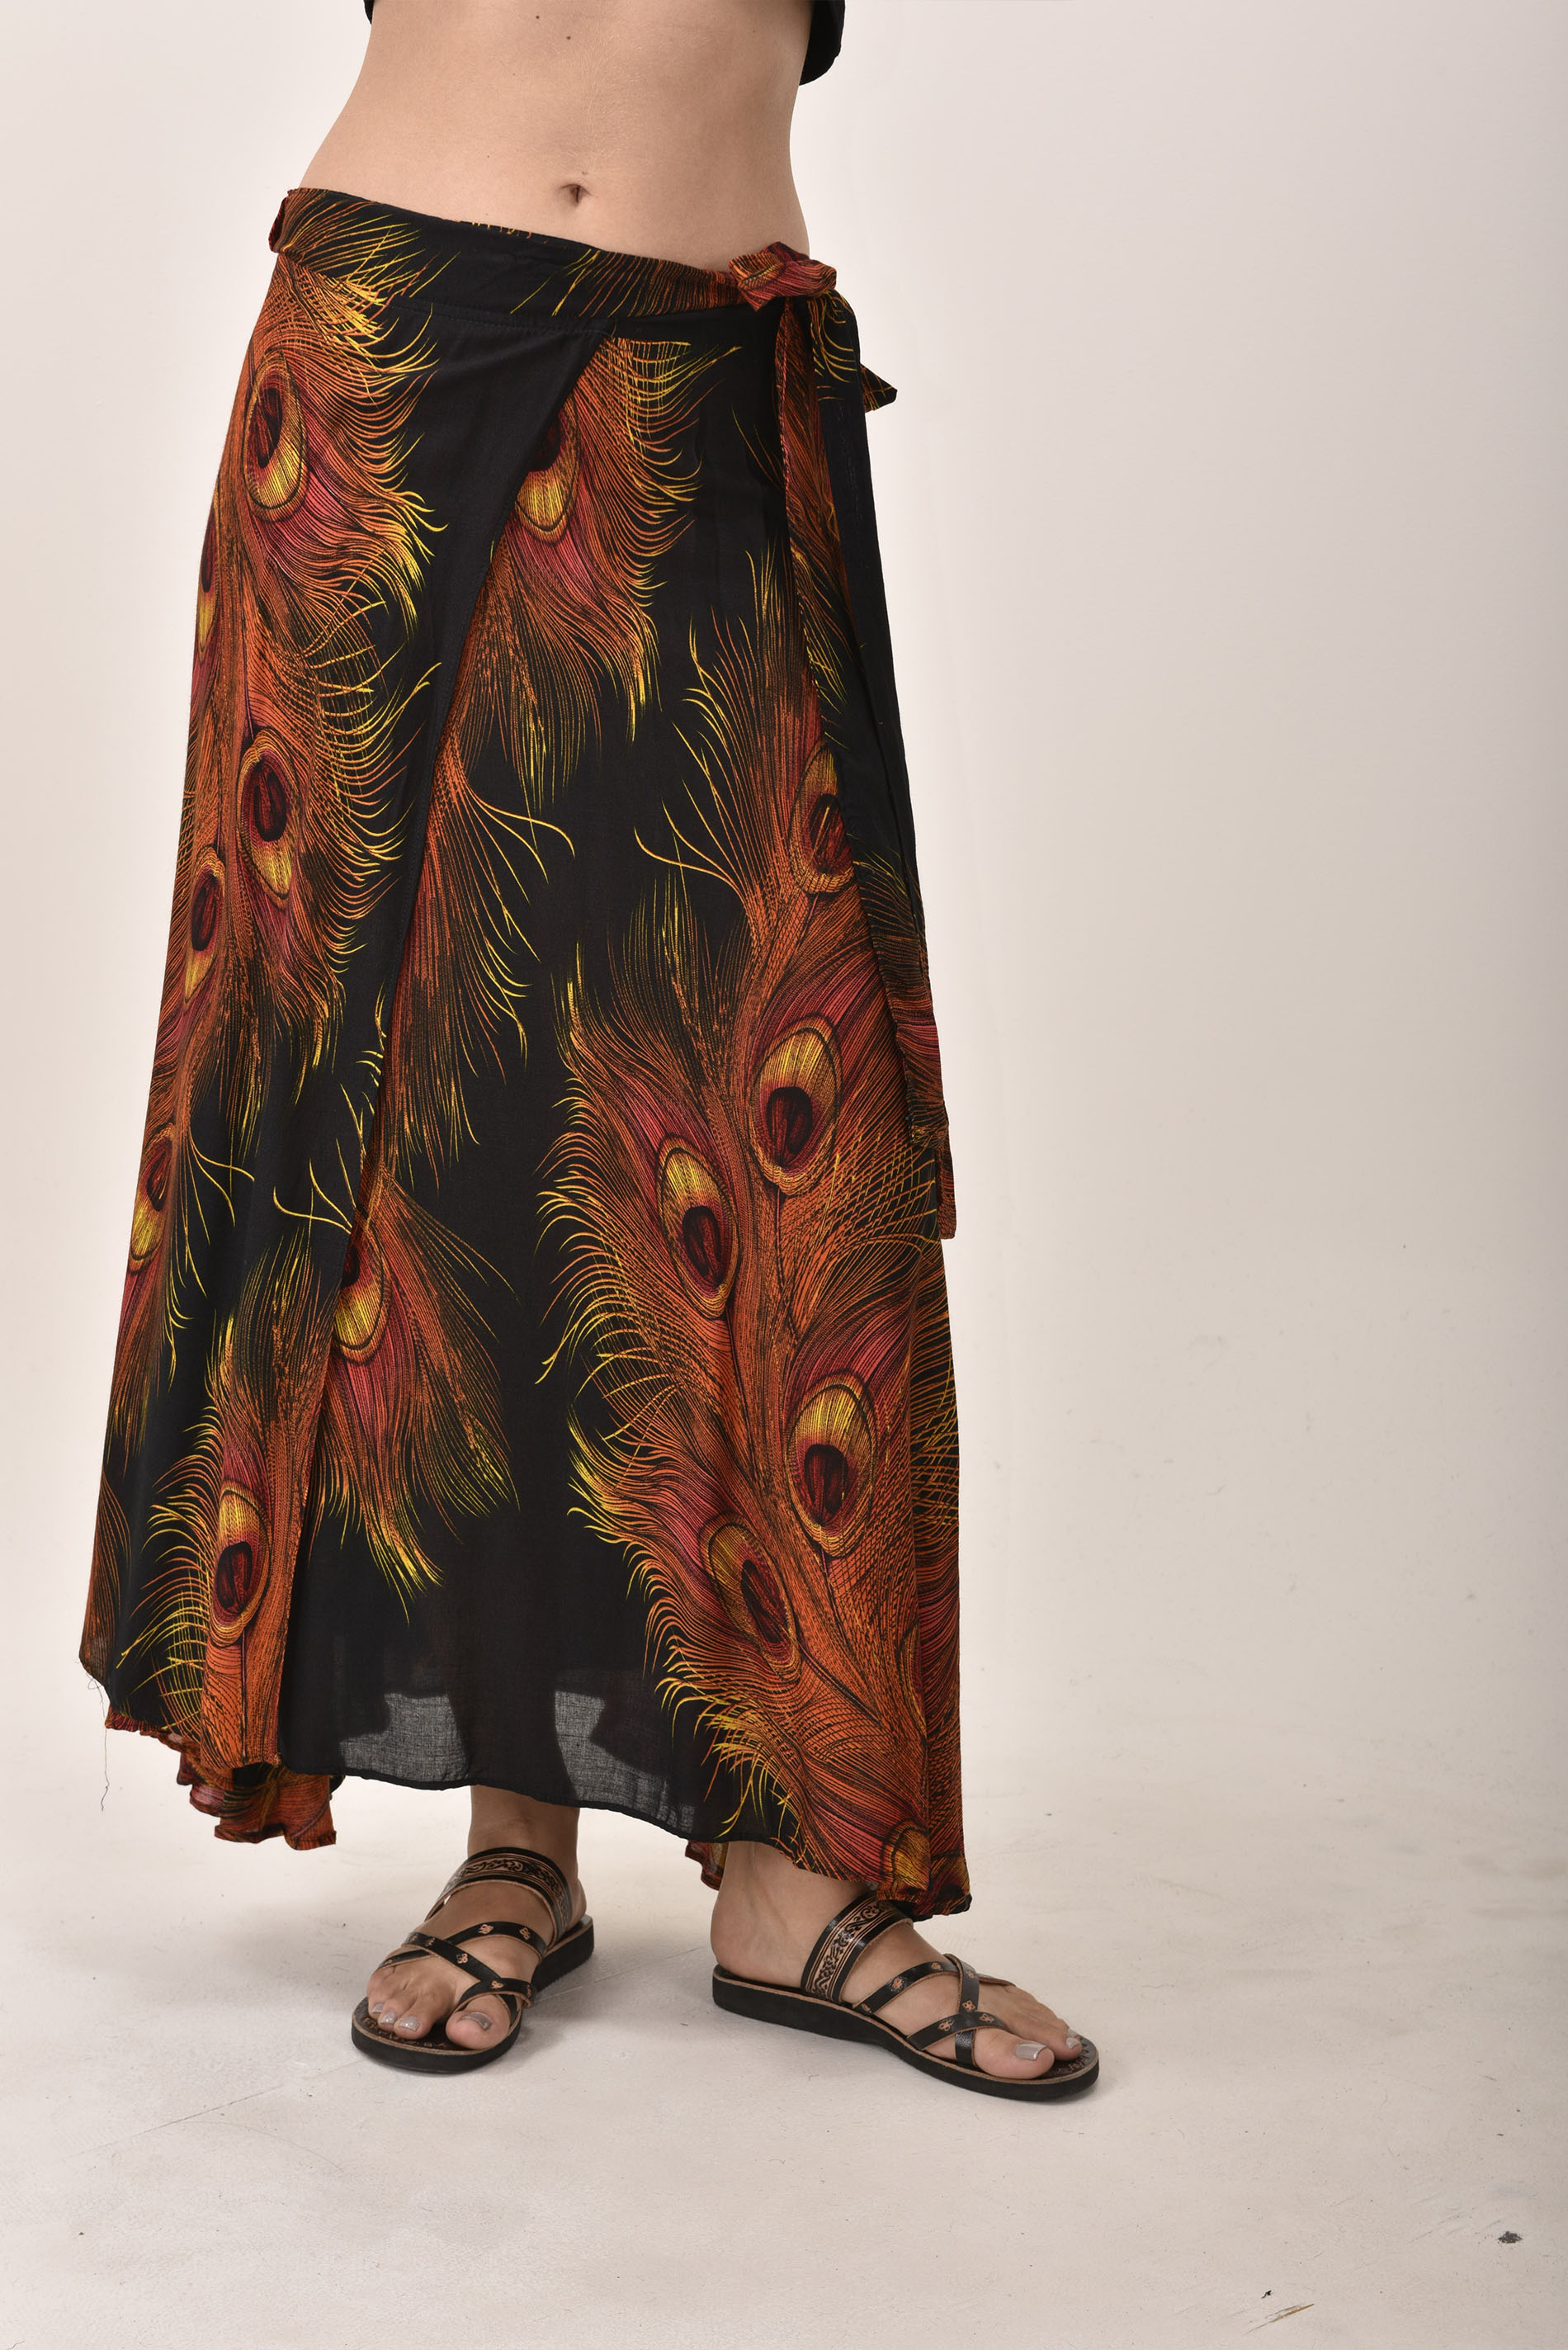 Long Wrap Skirt, Peacock Print, Black